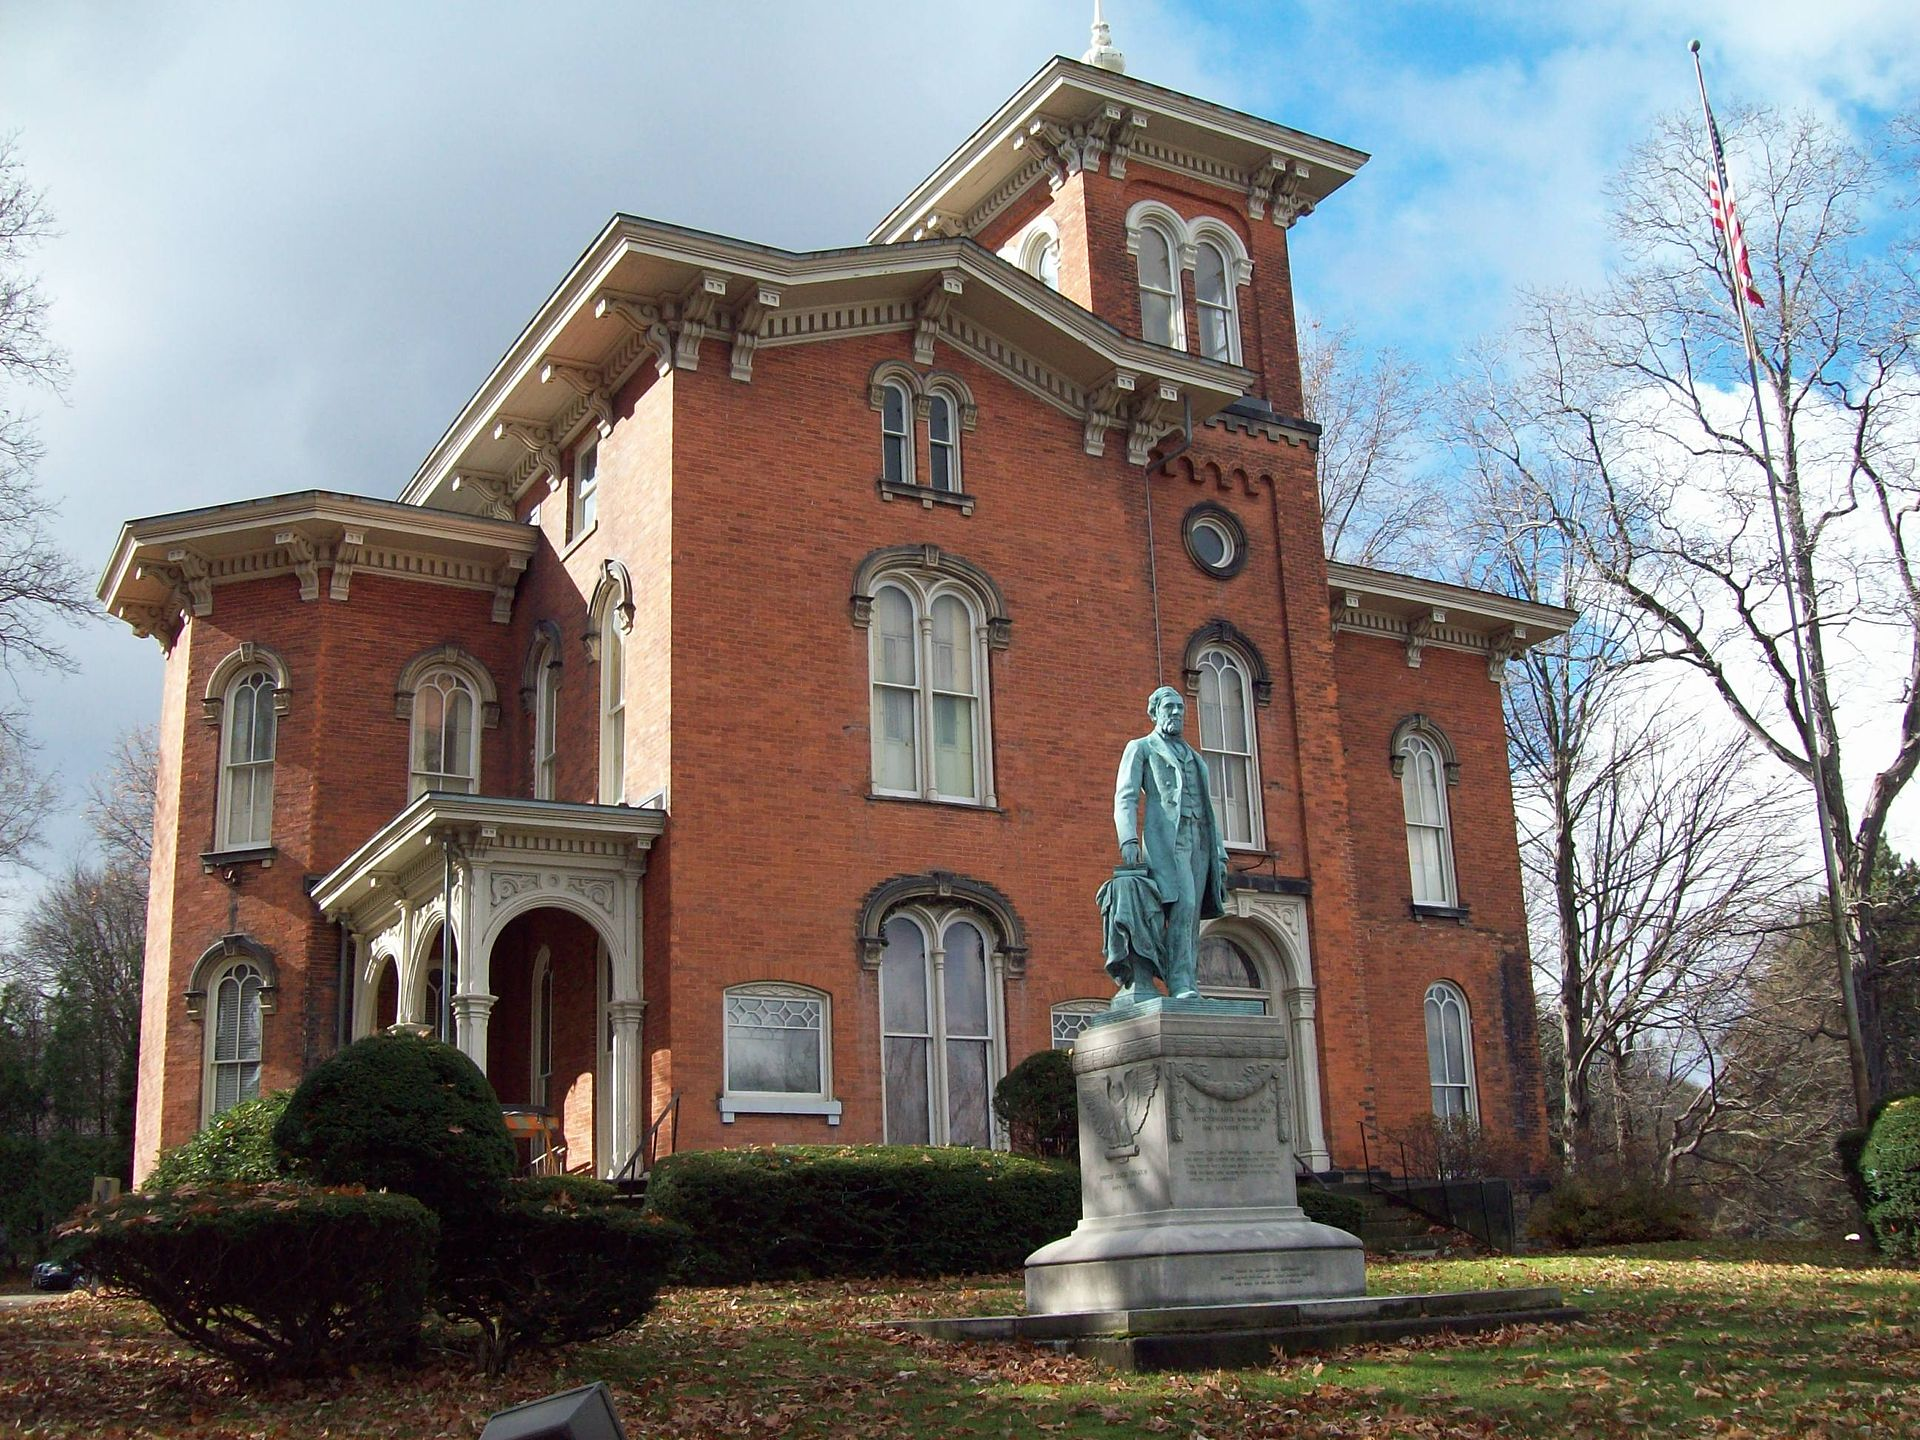 The Gov. Reuben Fenton Mansion was built in 1863 and has been home to the Fenton History Center since 1964.